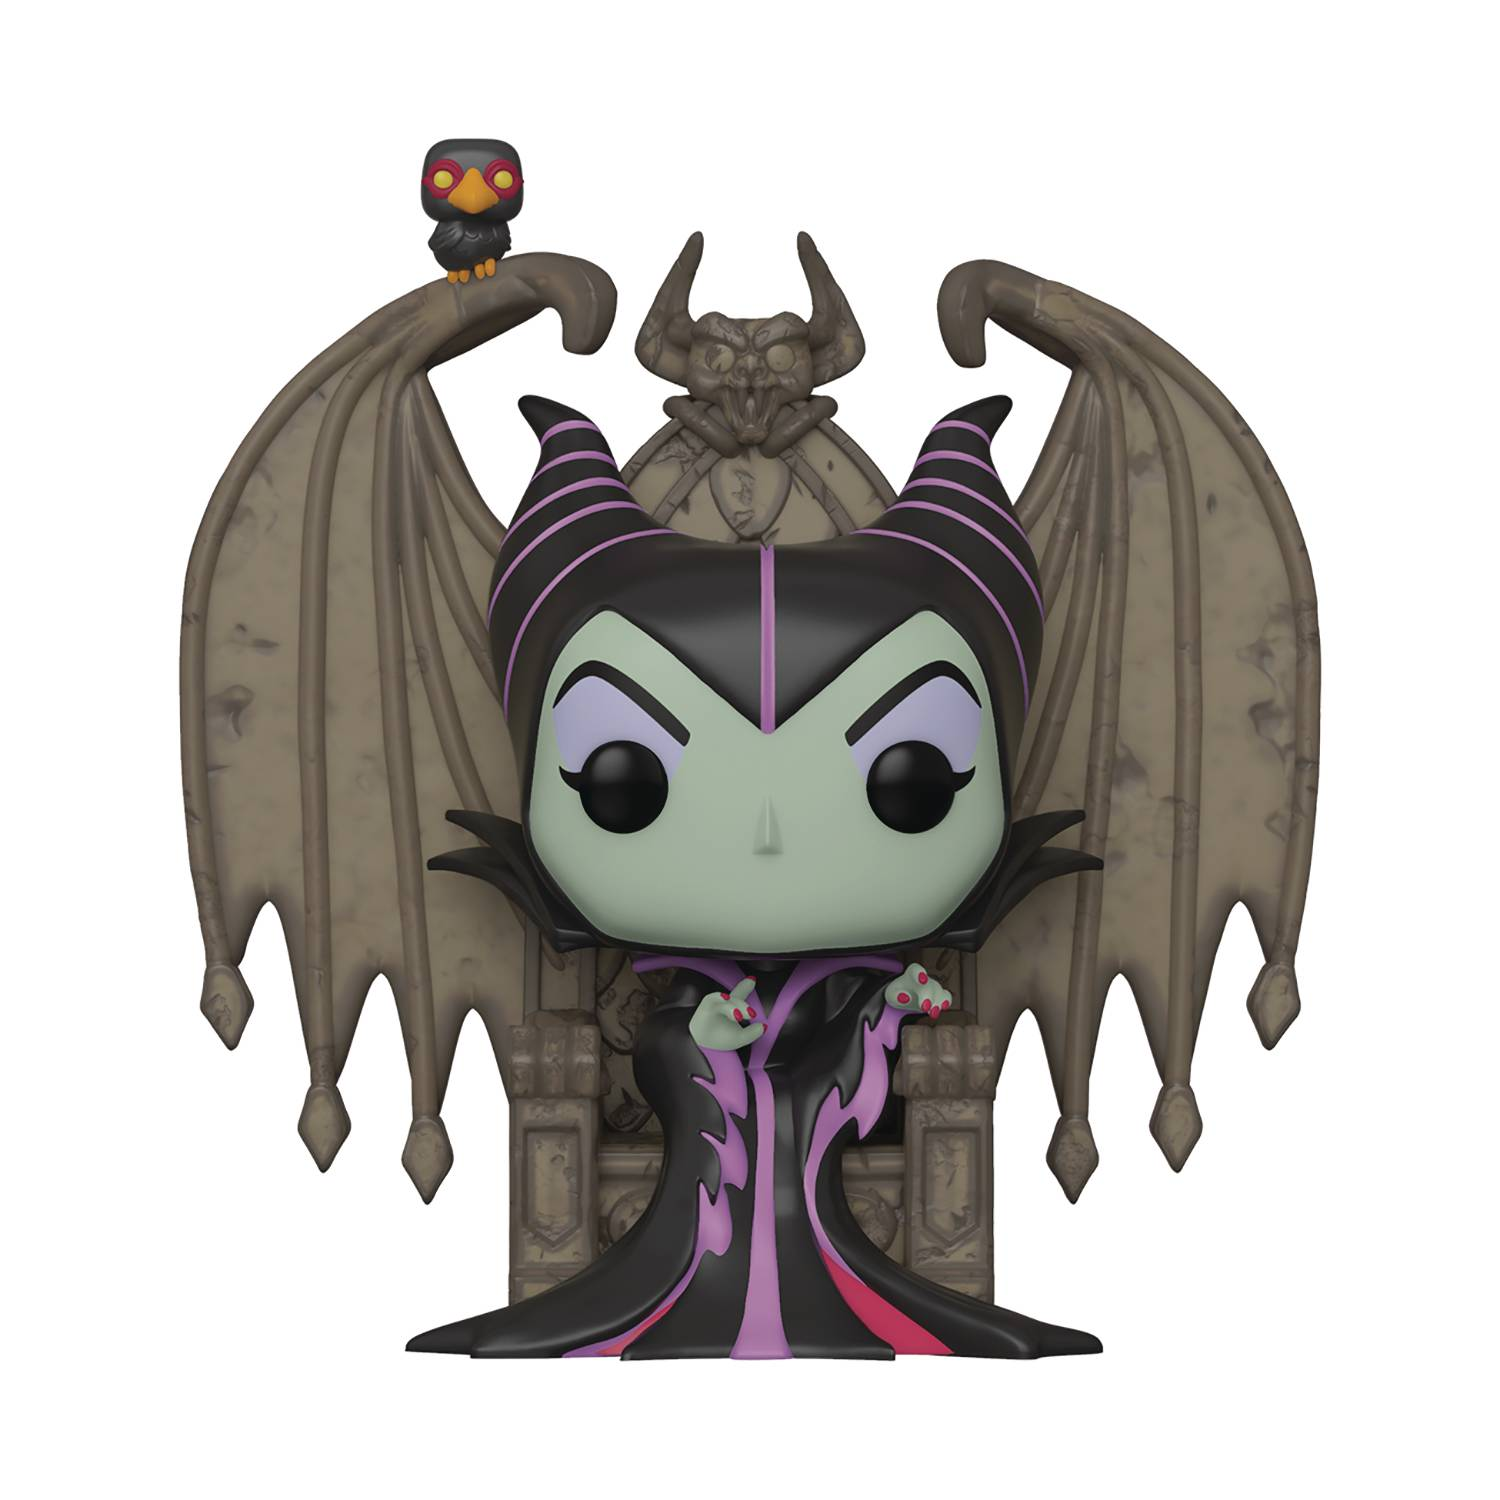 POP DELUXE VILLAINS MALEFICENT ON THRONE VINYL FIGURE